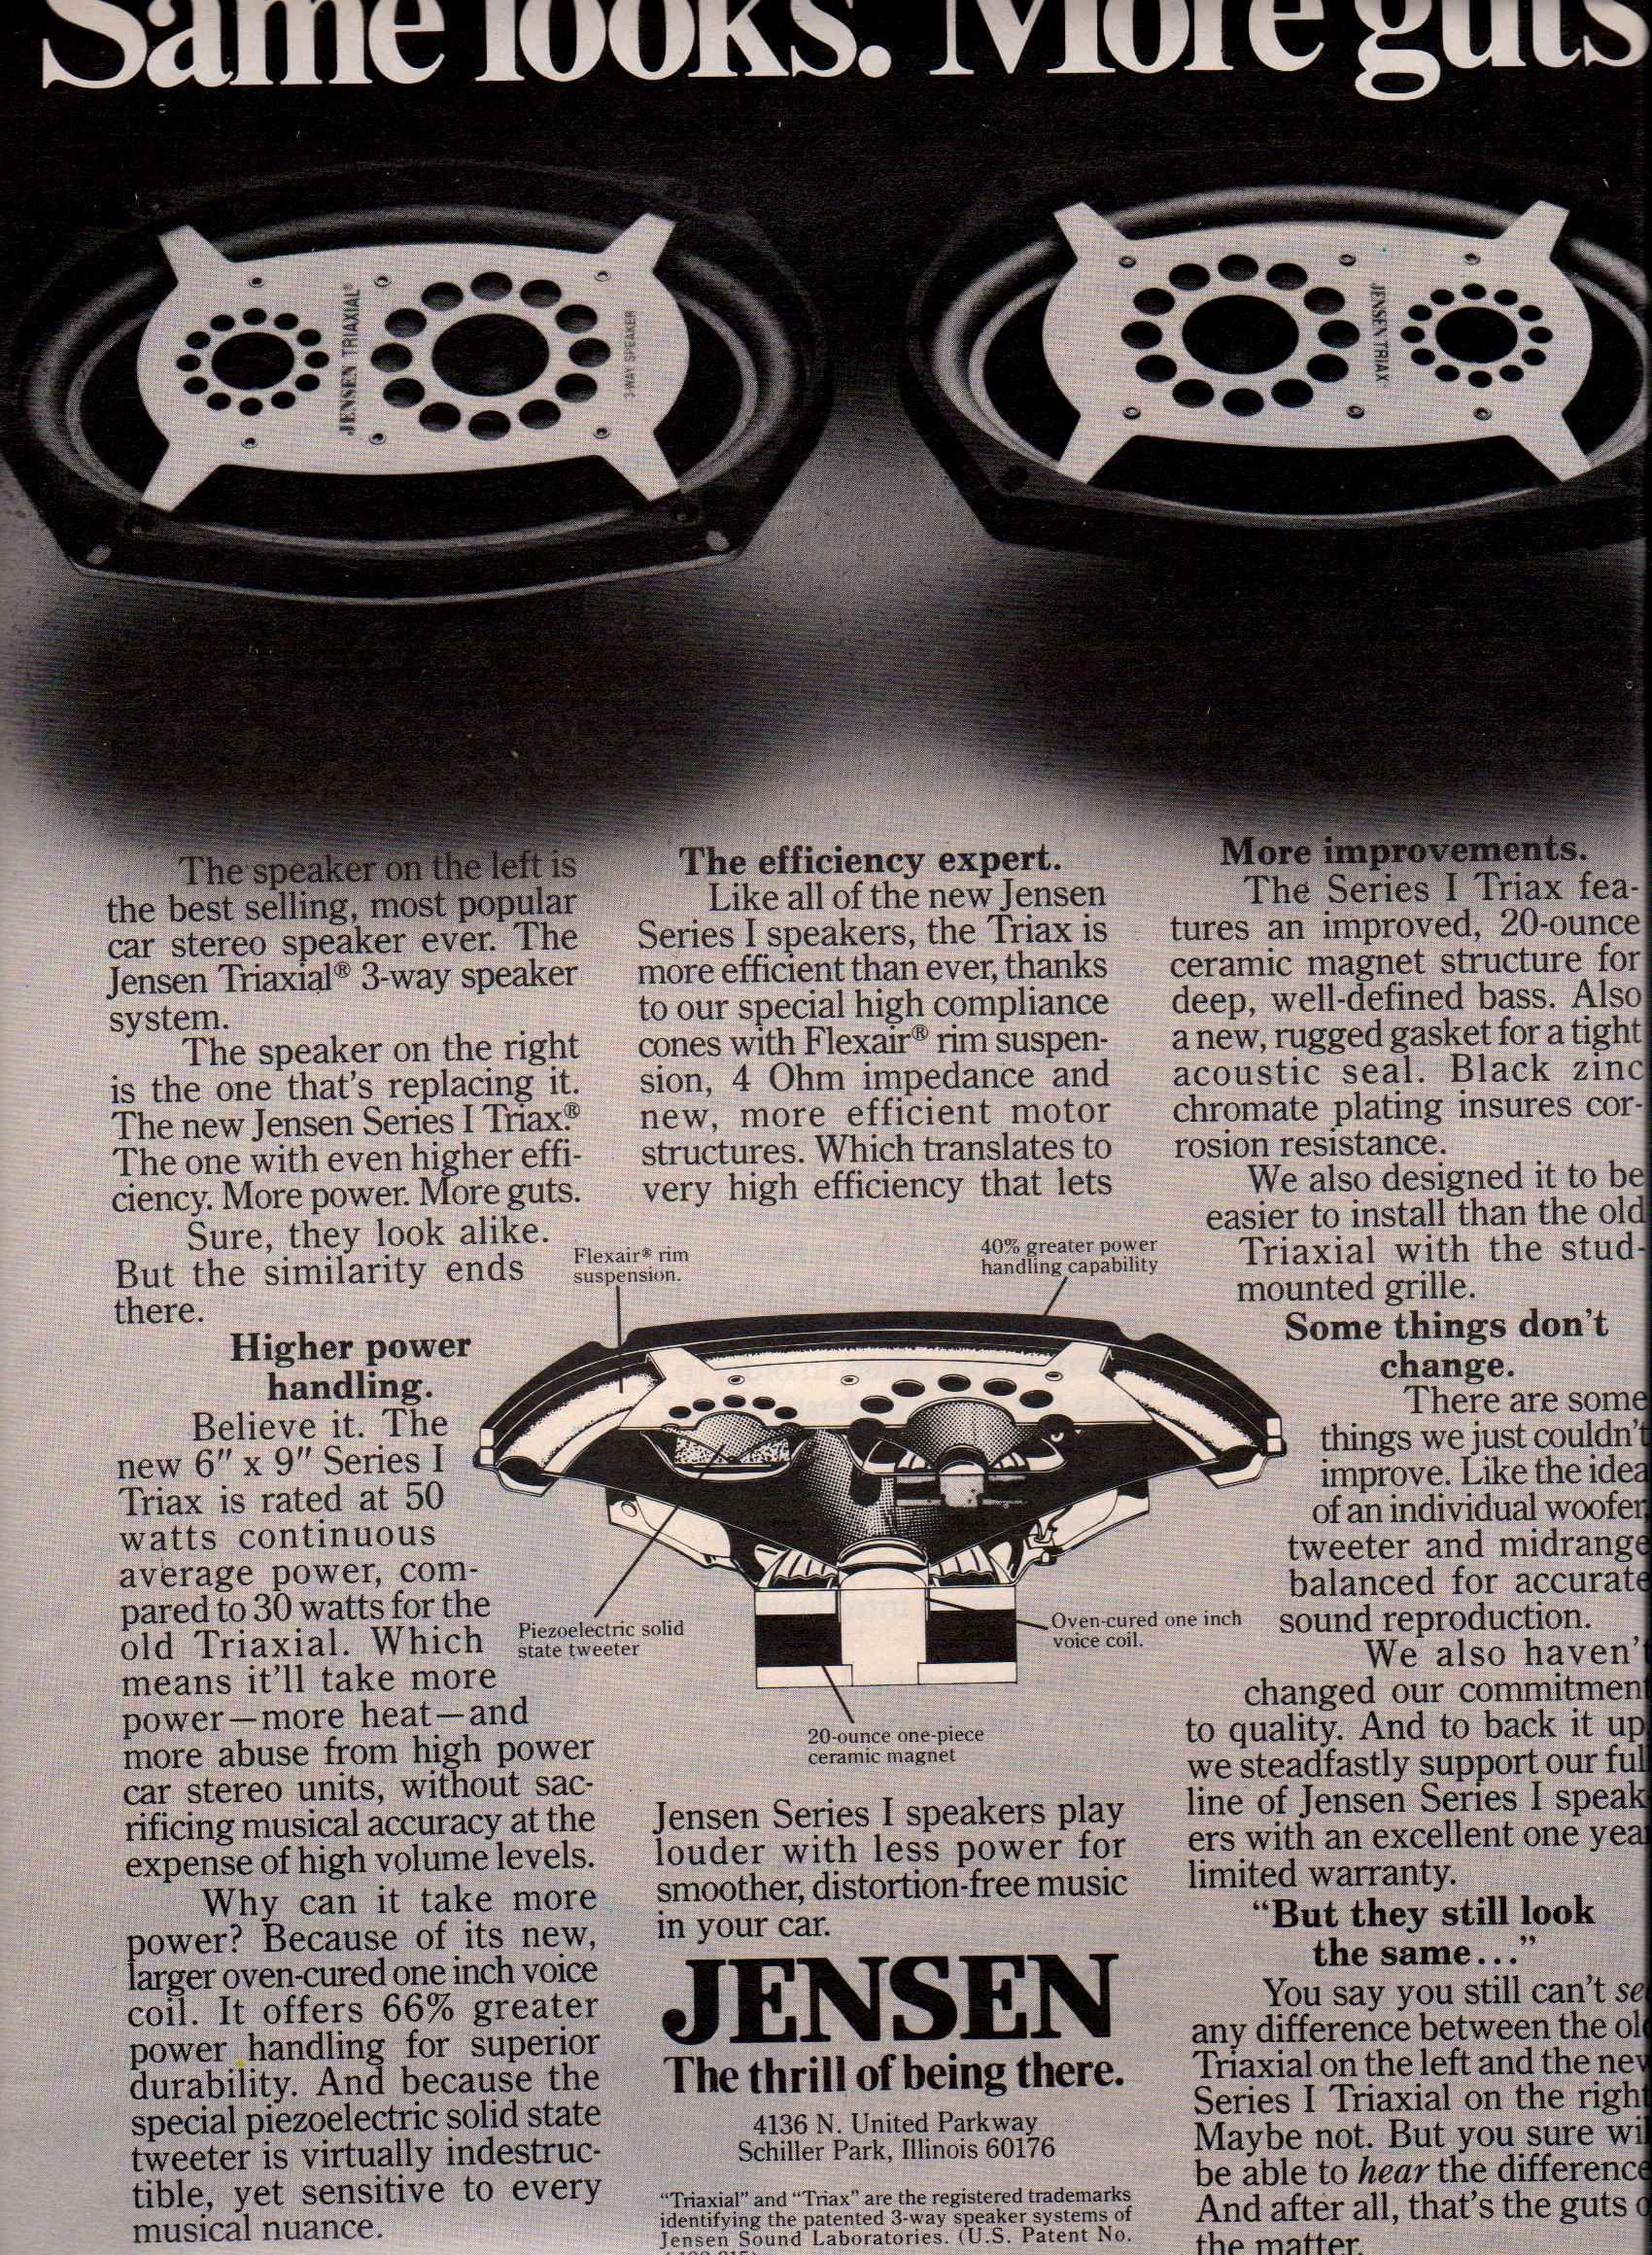 1980 jensen series 1 triax speakers ad rolling stone college papers spring 1980 [ 1700 x 2320 Pixel ]